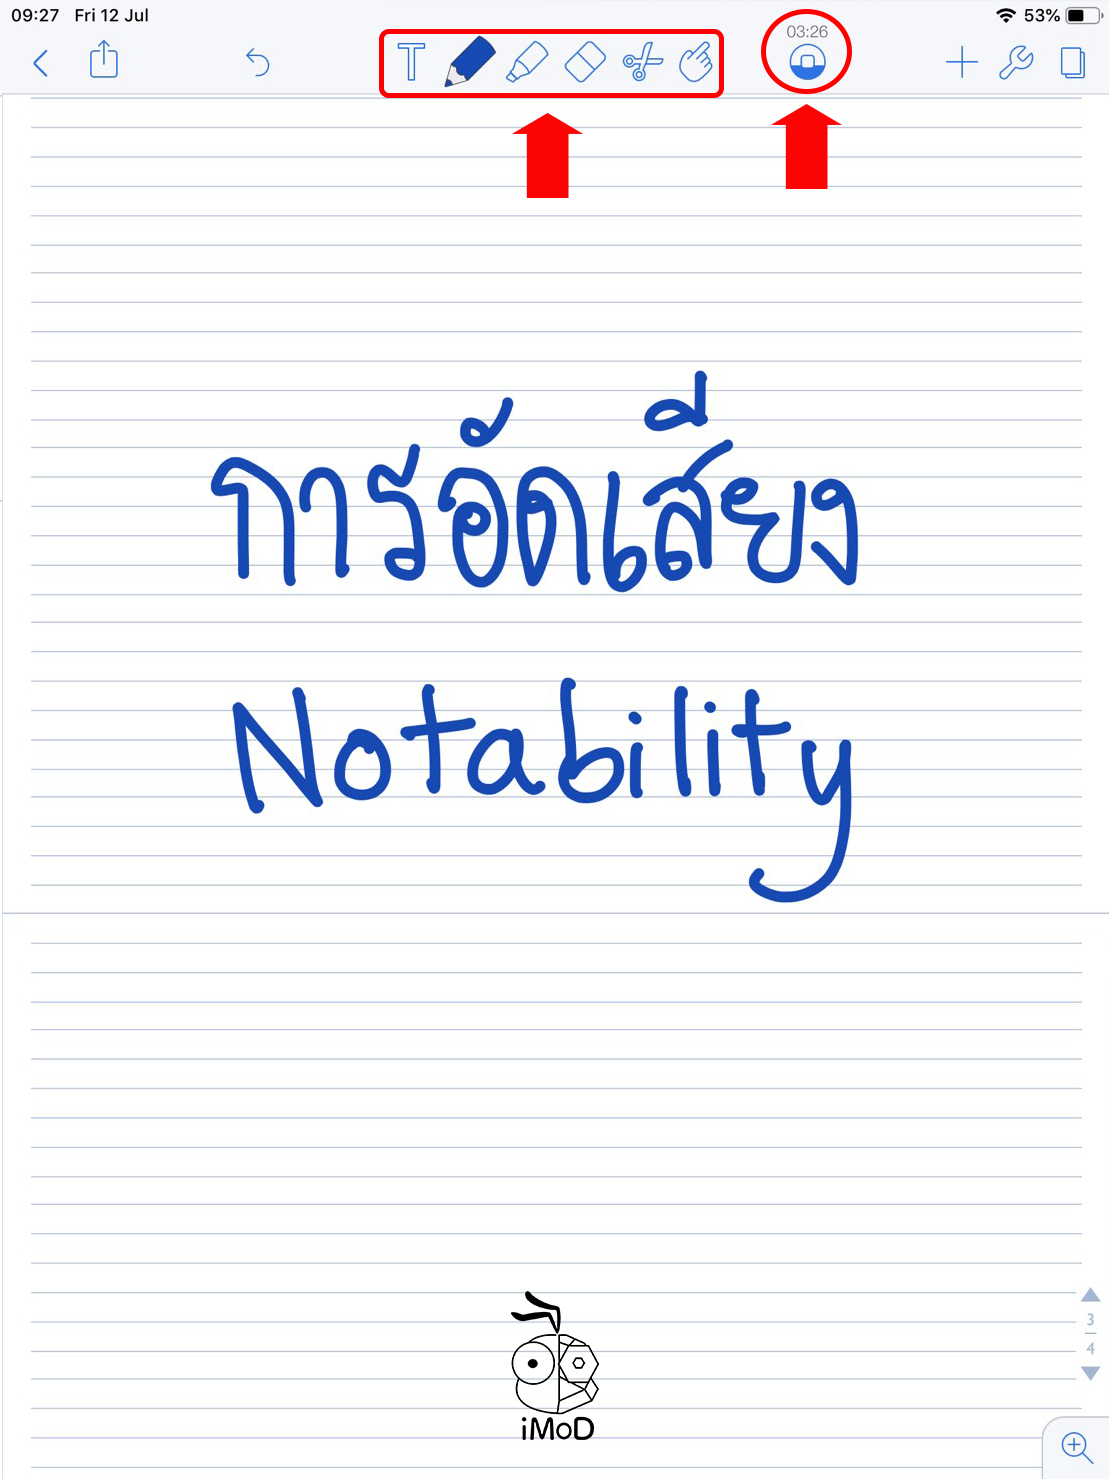 How To Record Notability 09